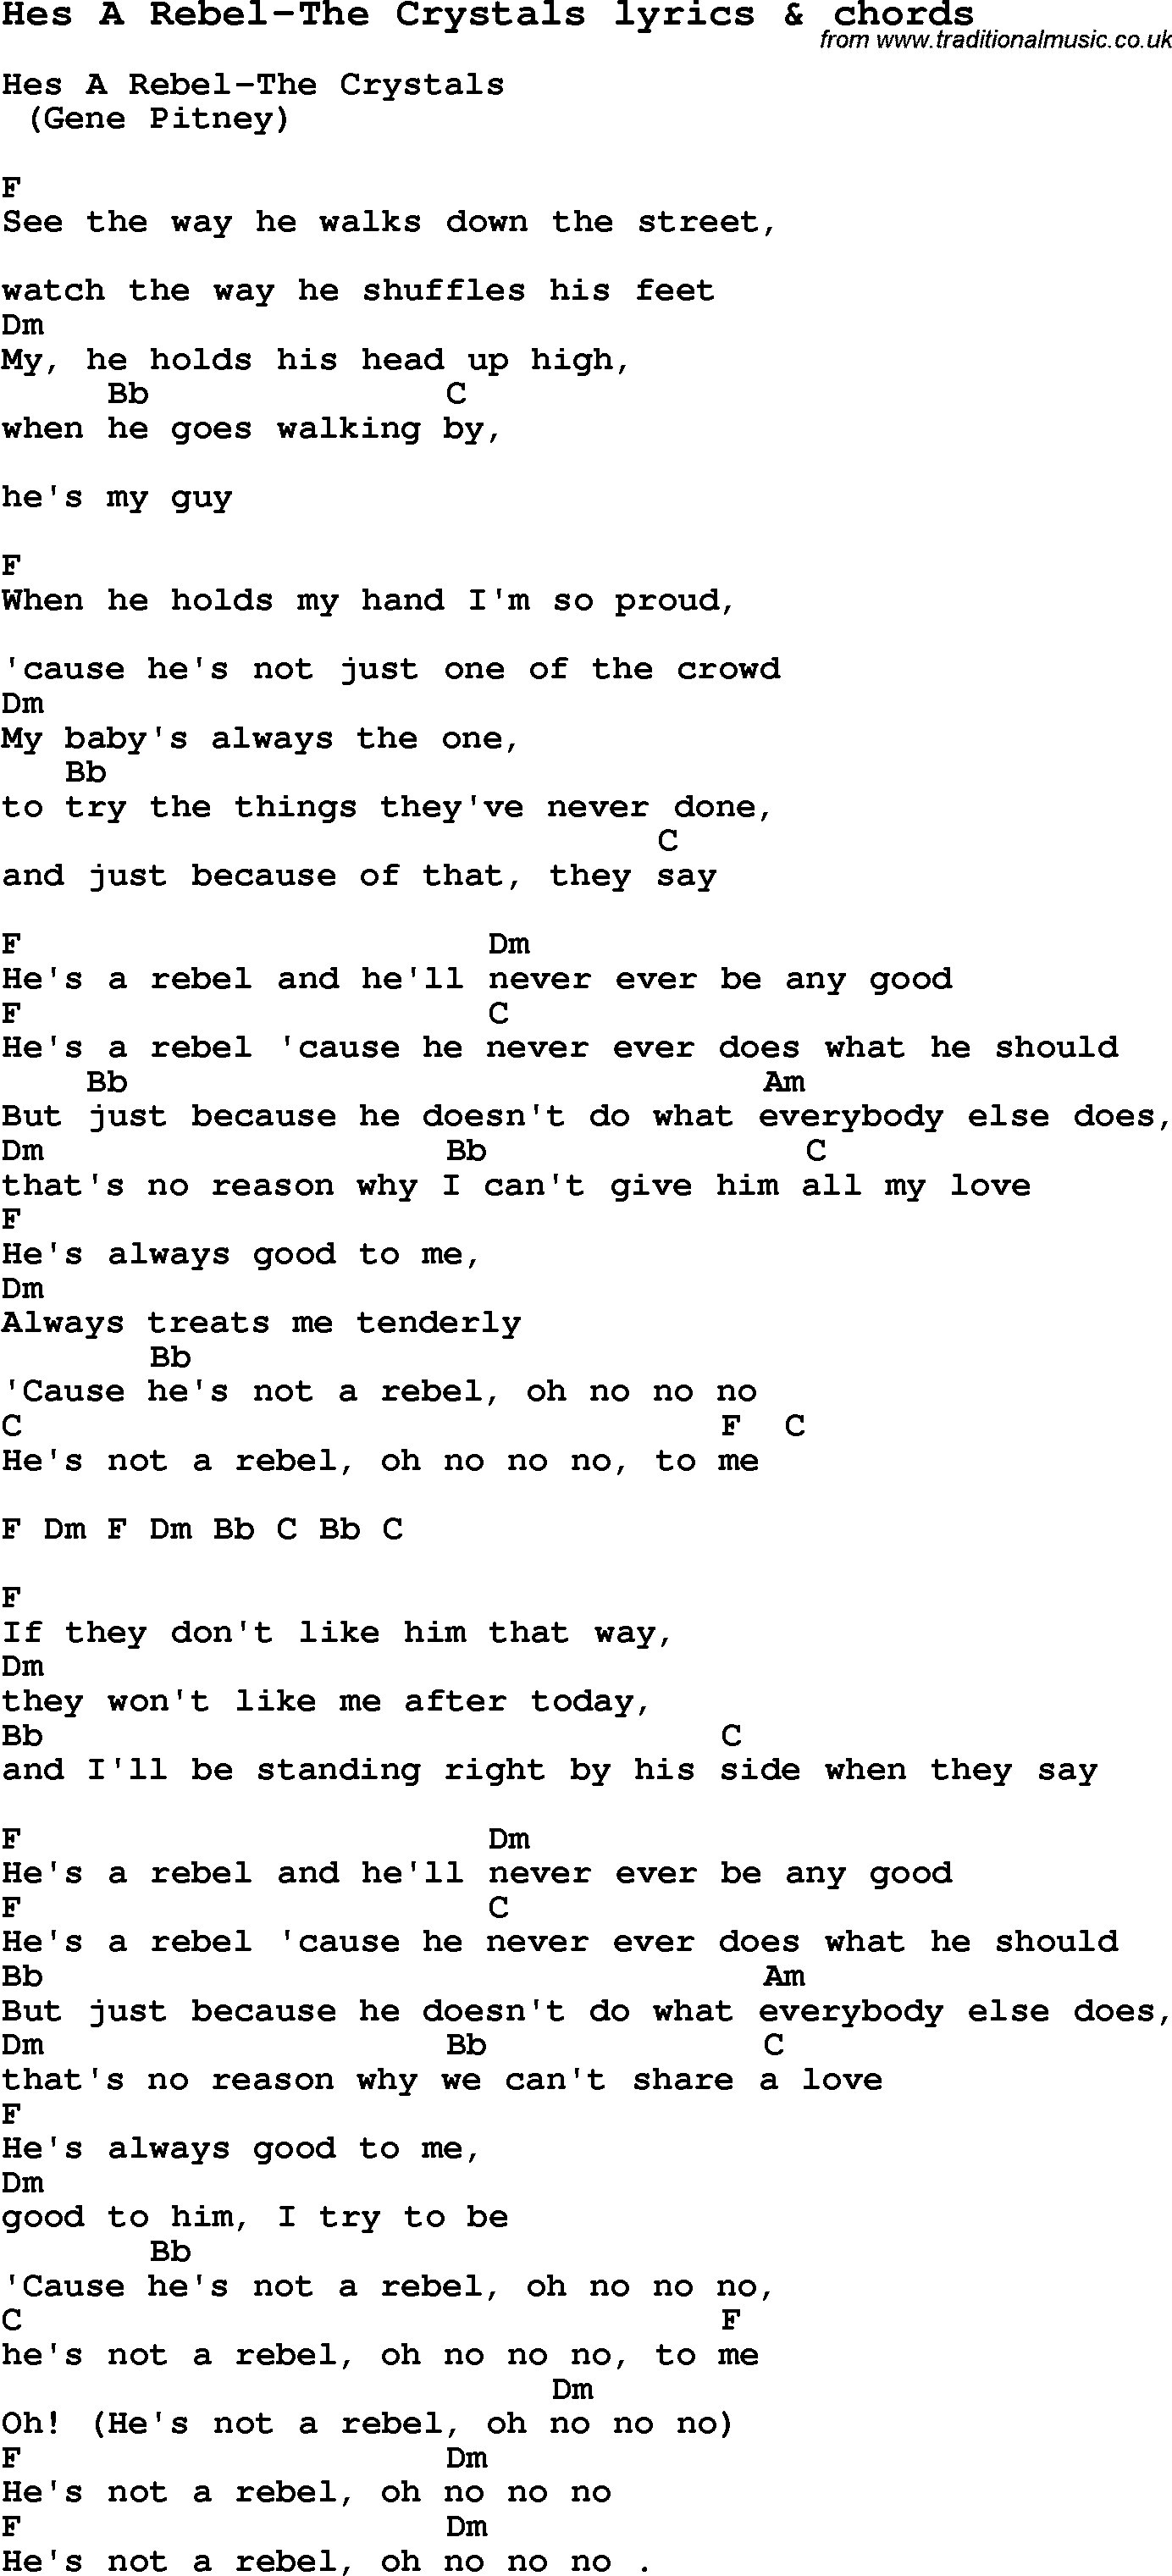 Love Song Lyrics forHes A Rebel The Crystals with chords.